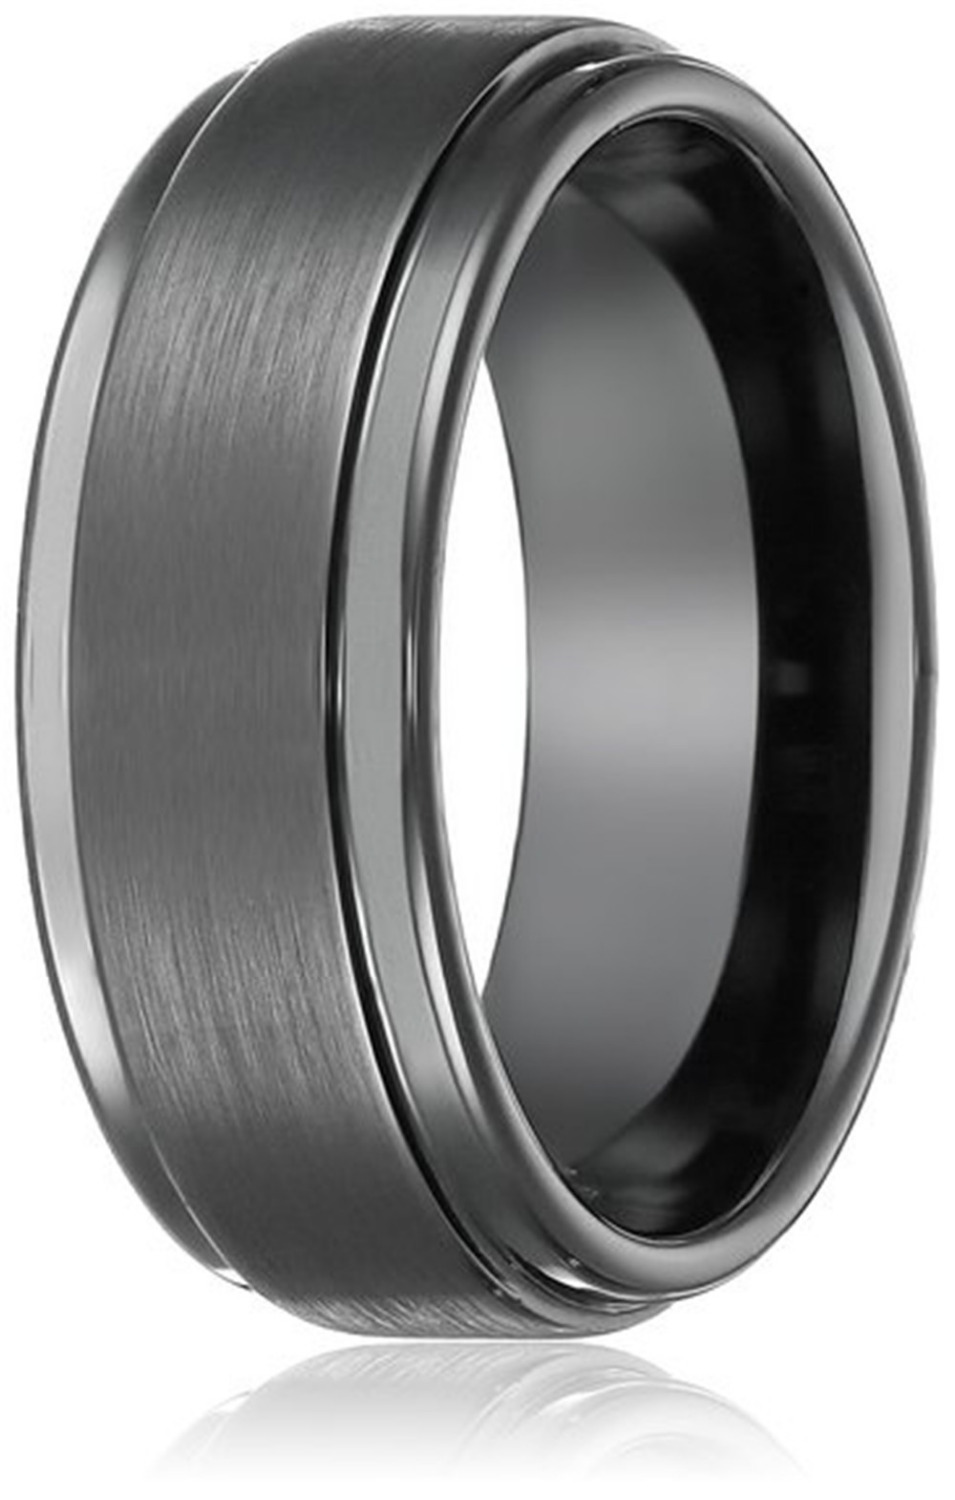 8mm Black High Polish Tungsten Carbide Mens Wedding Band Ring in